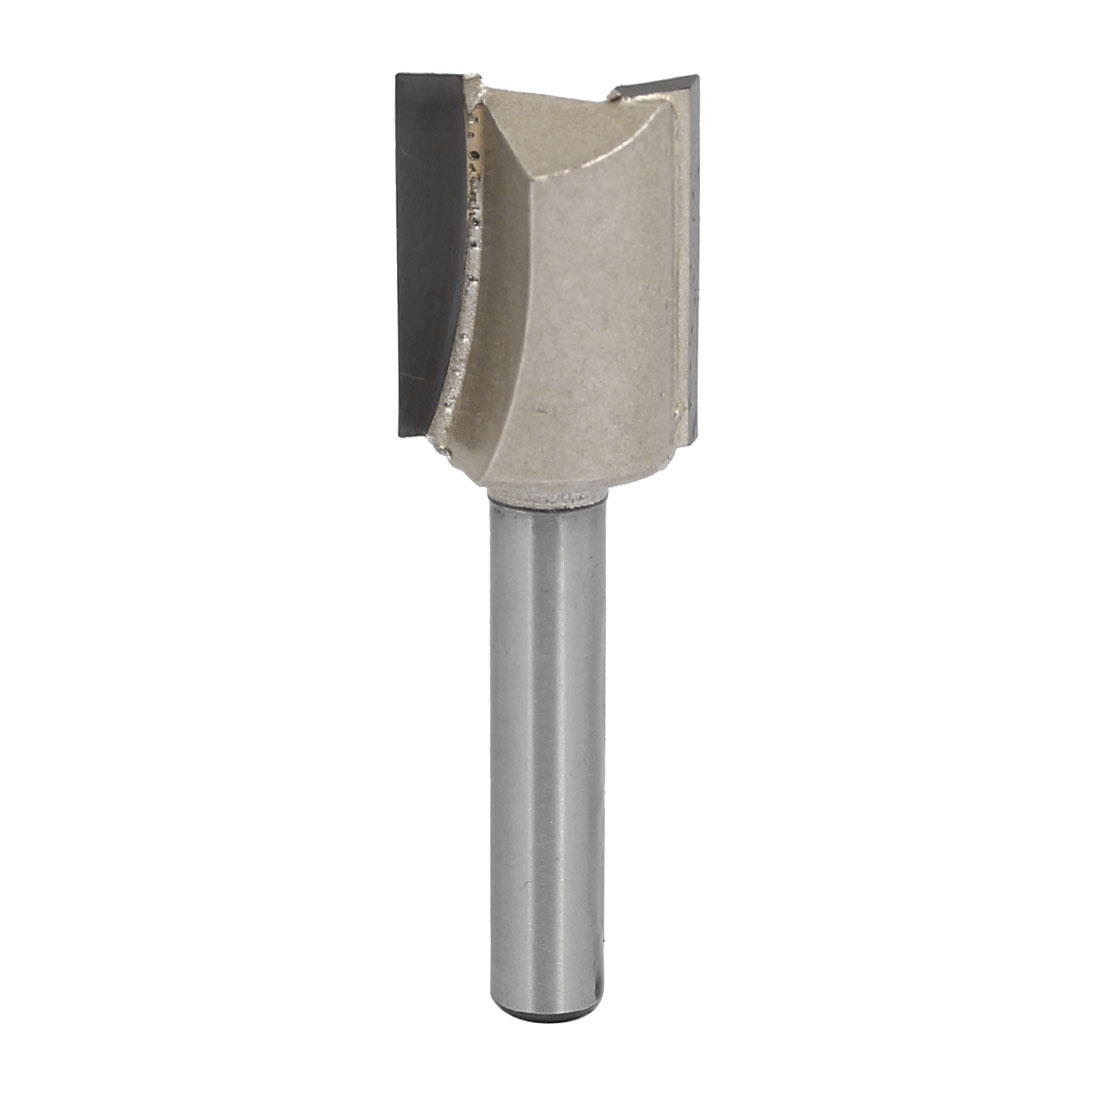 "5/8"" Dia by 20mm Depth Double Flute Carbide Tip Straight Router Bit, 1/4"" Shank"